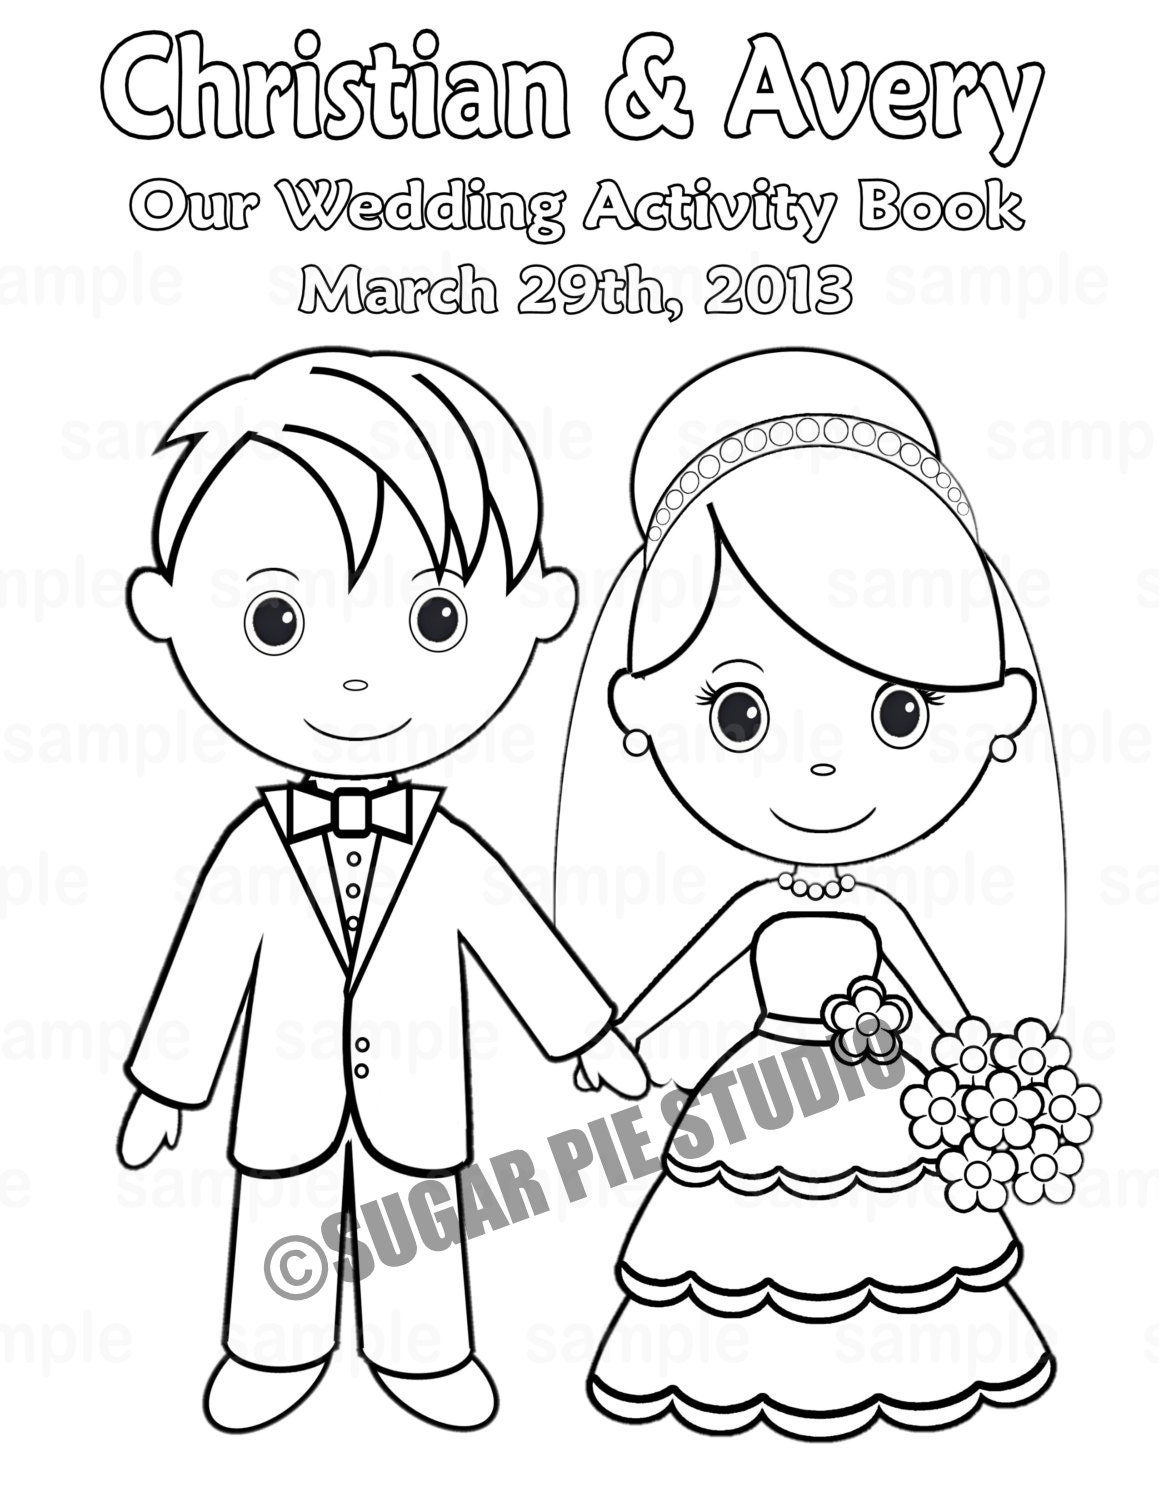 Printable Personalized Wedding coloring activity book ...